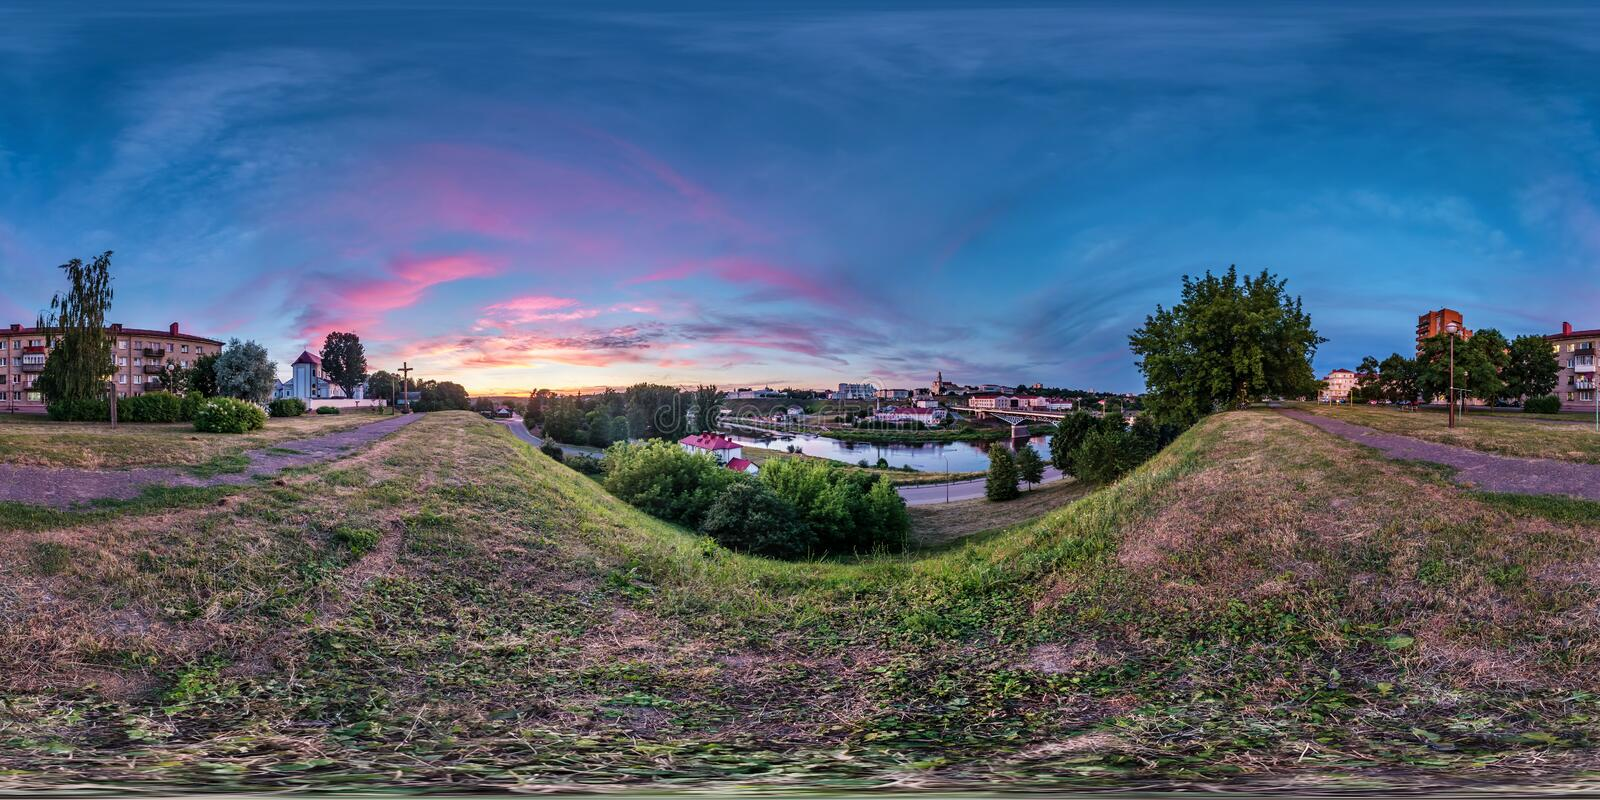 Full seamless spherical hdri panorama 360 degrees angle view on bank of wide river overlooking old city in sunset with beautiful. Clouds in equirectangular royalty free stock image